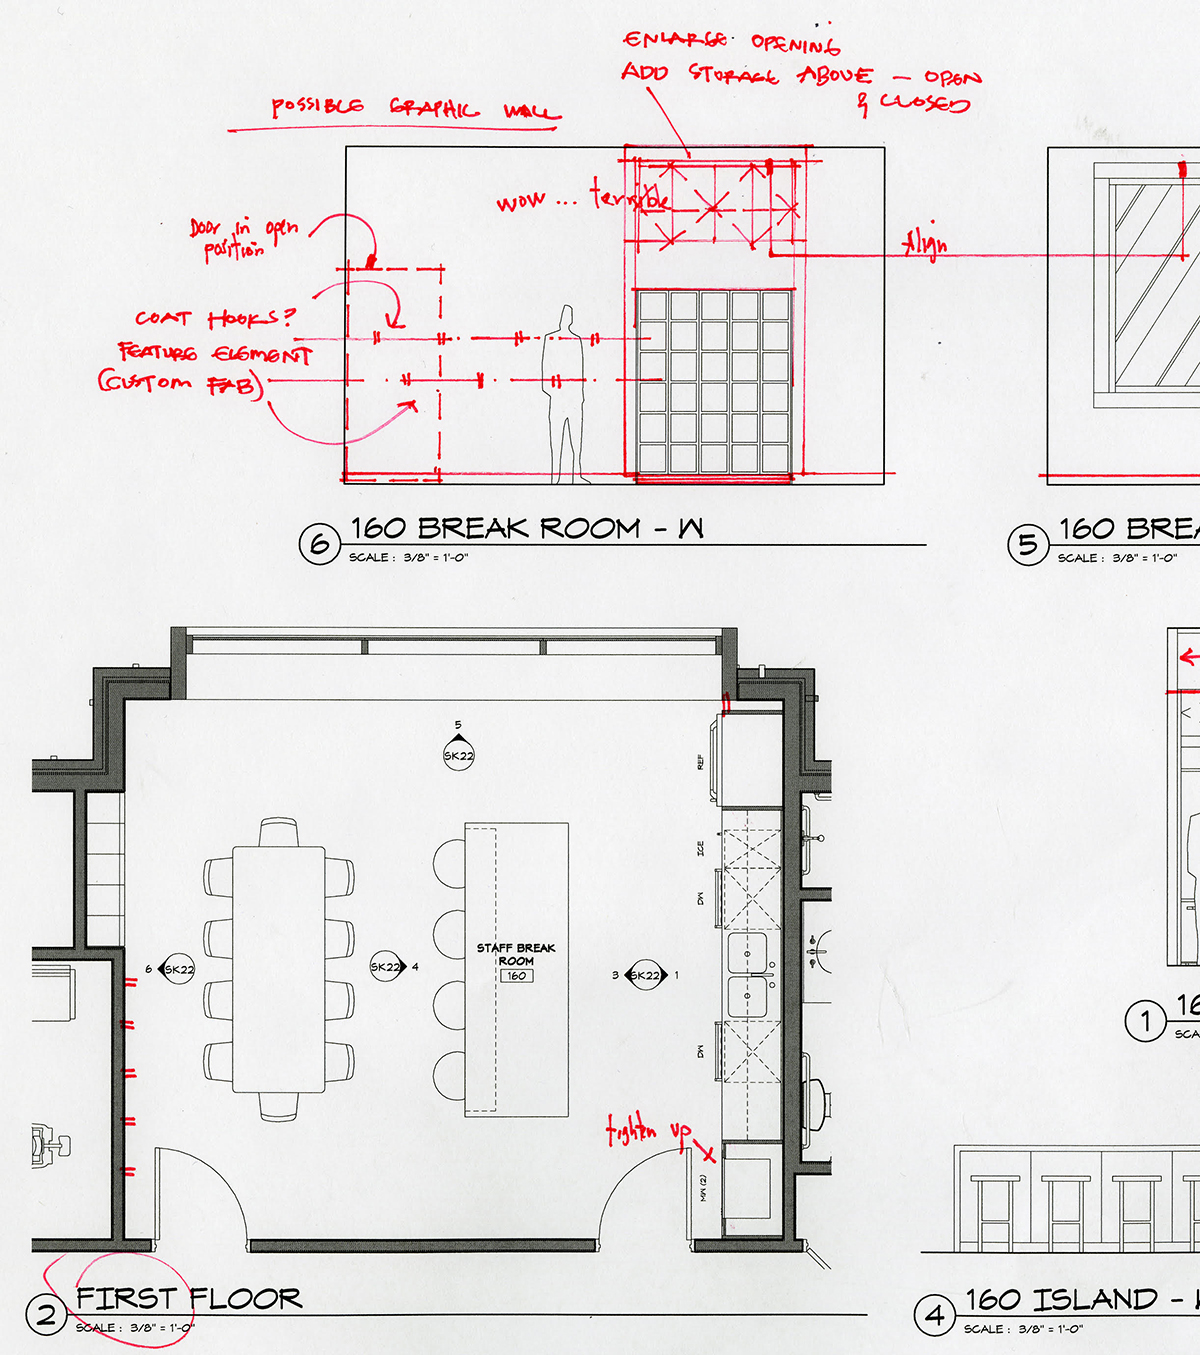 Creating Architectural Redlines - Design Comments 01